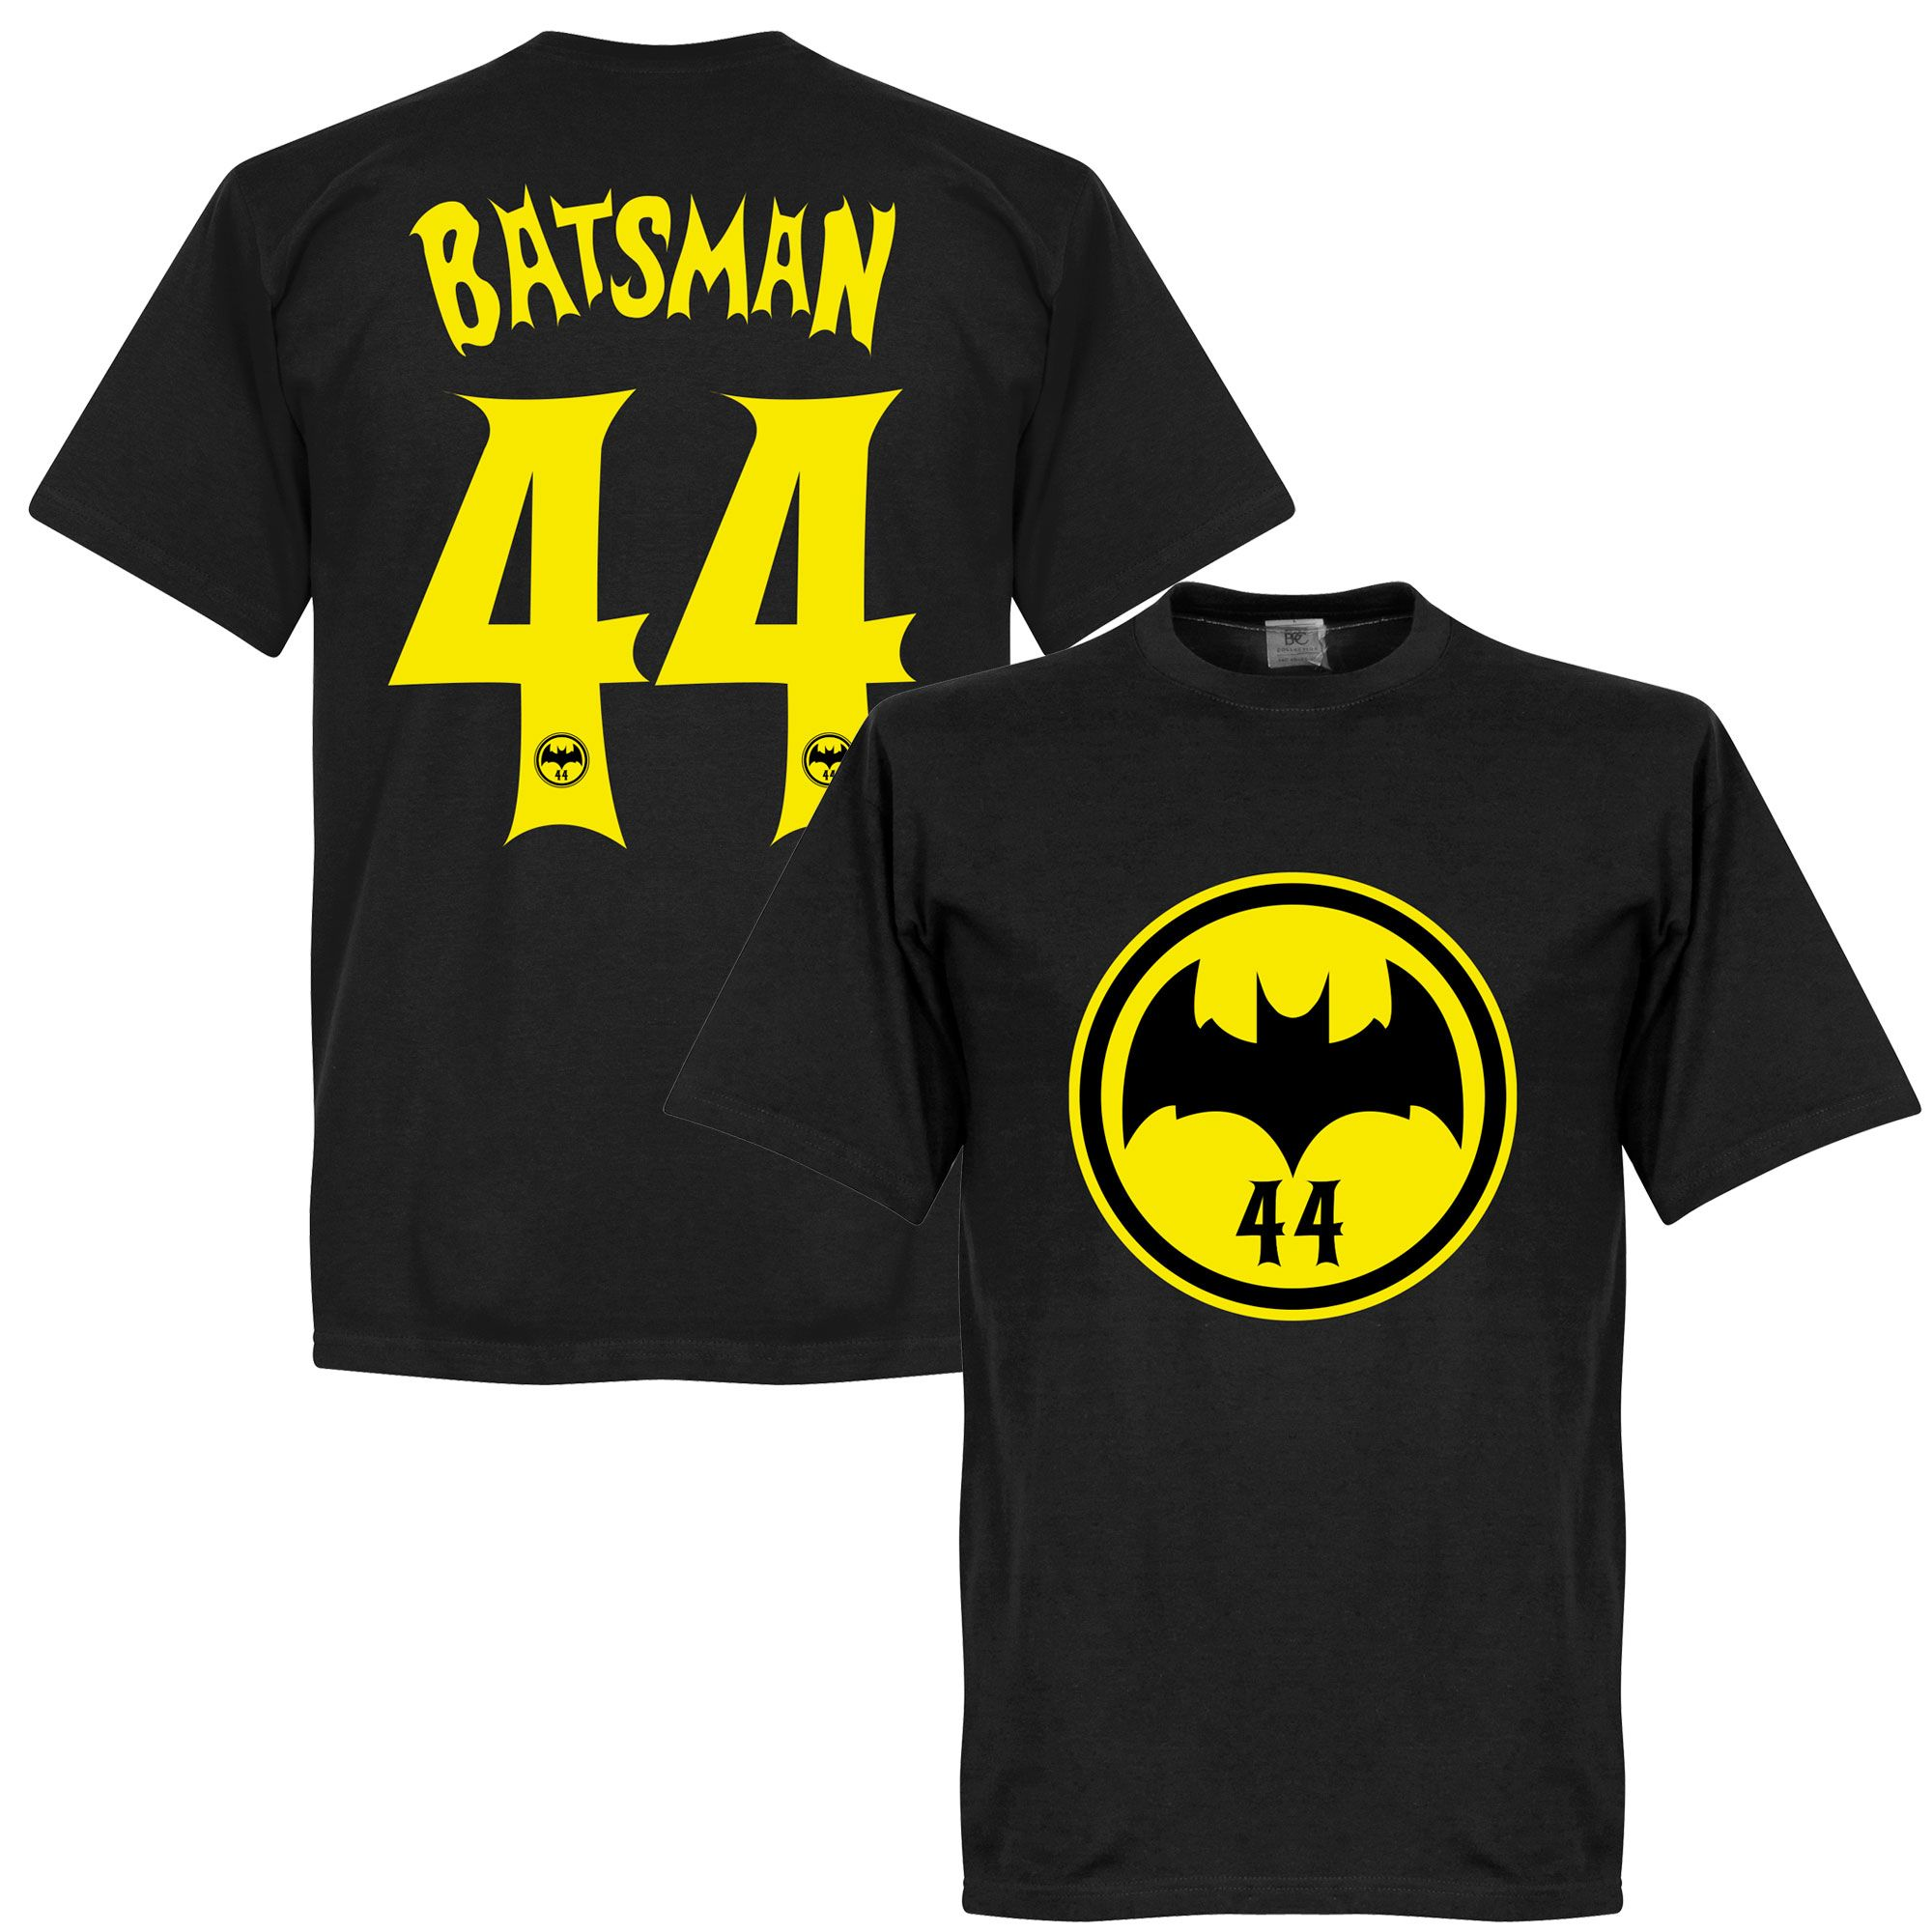 Batsman 44 TShirt Black (With images) Black shirt